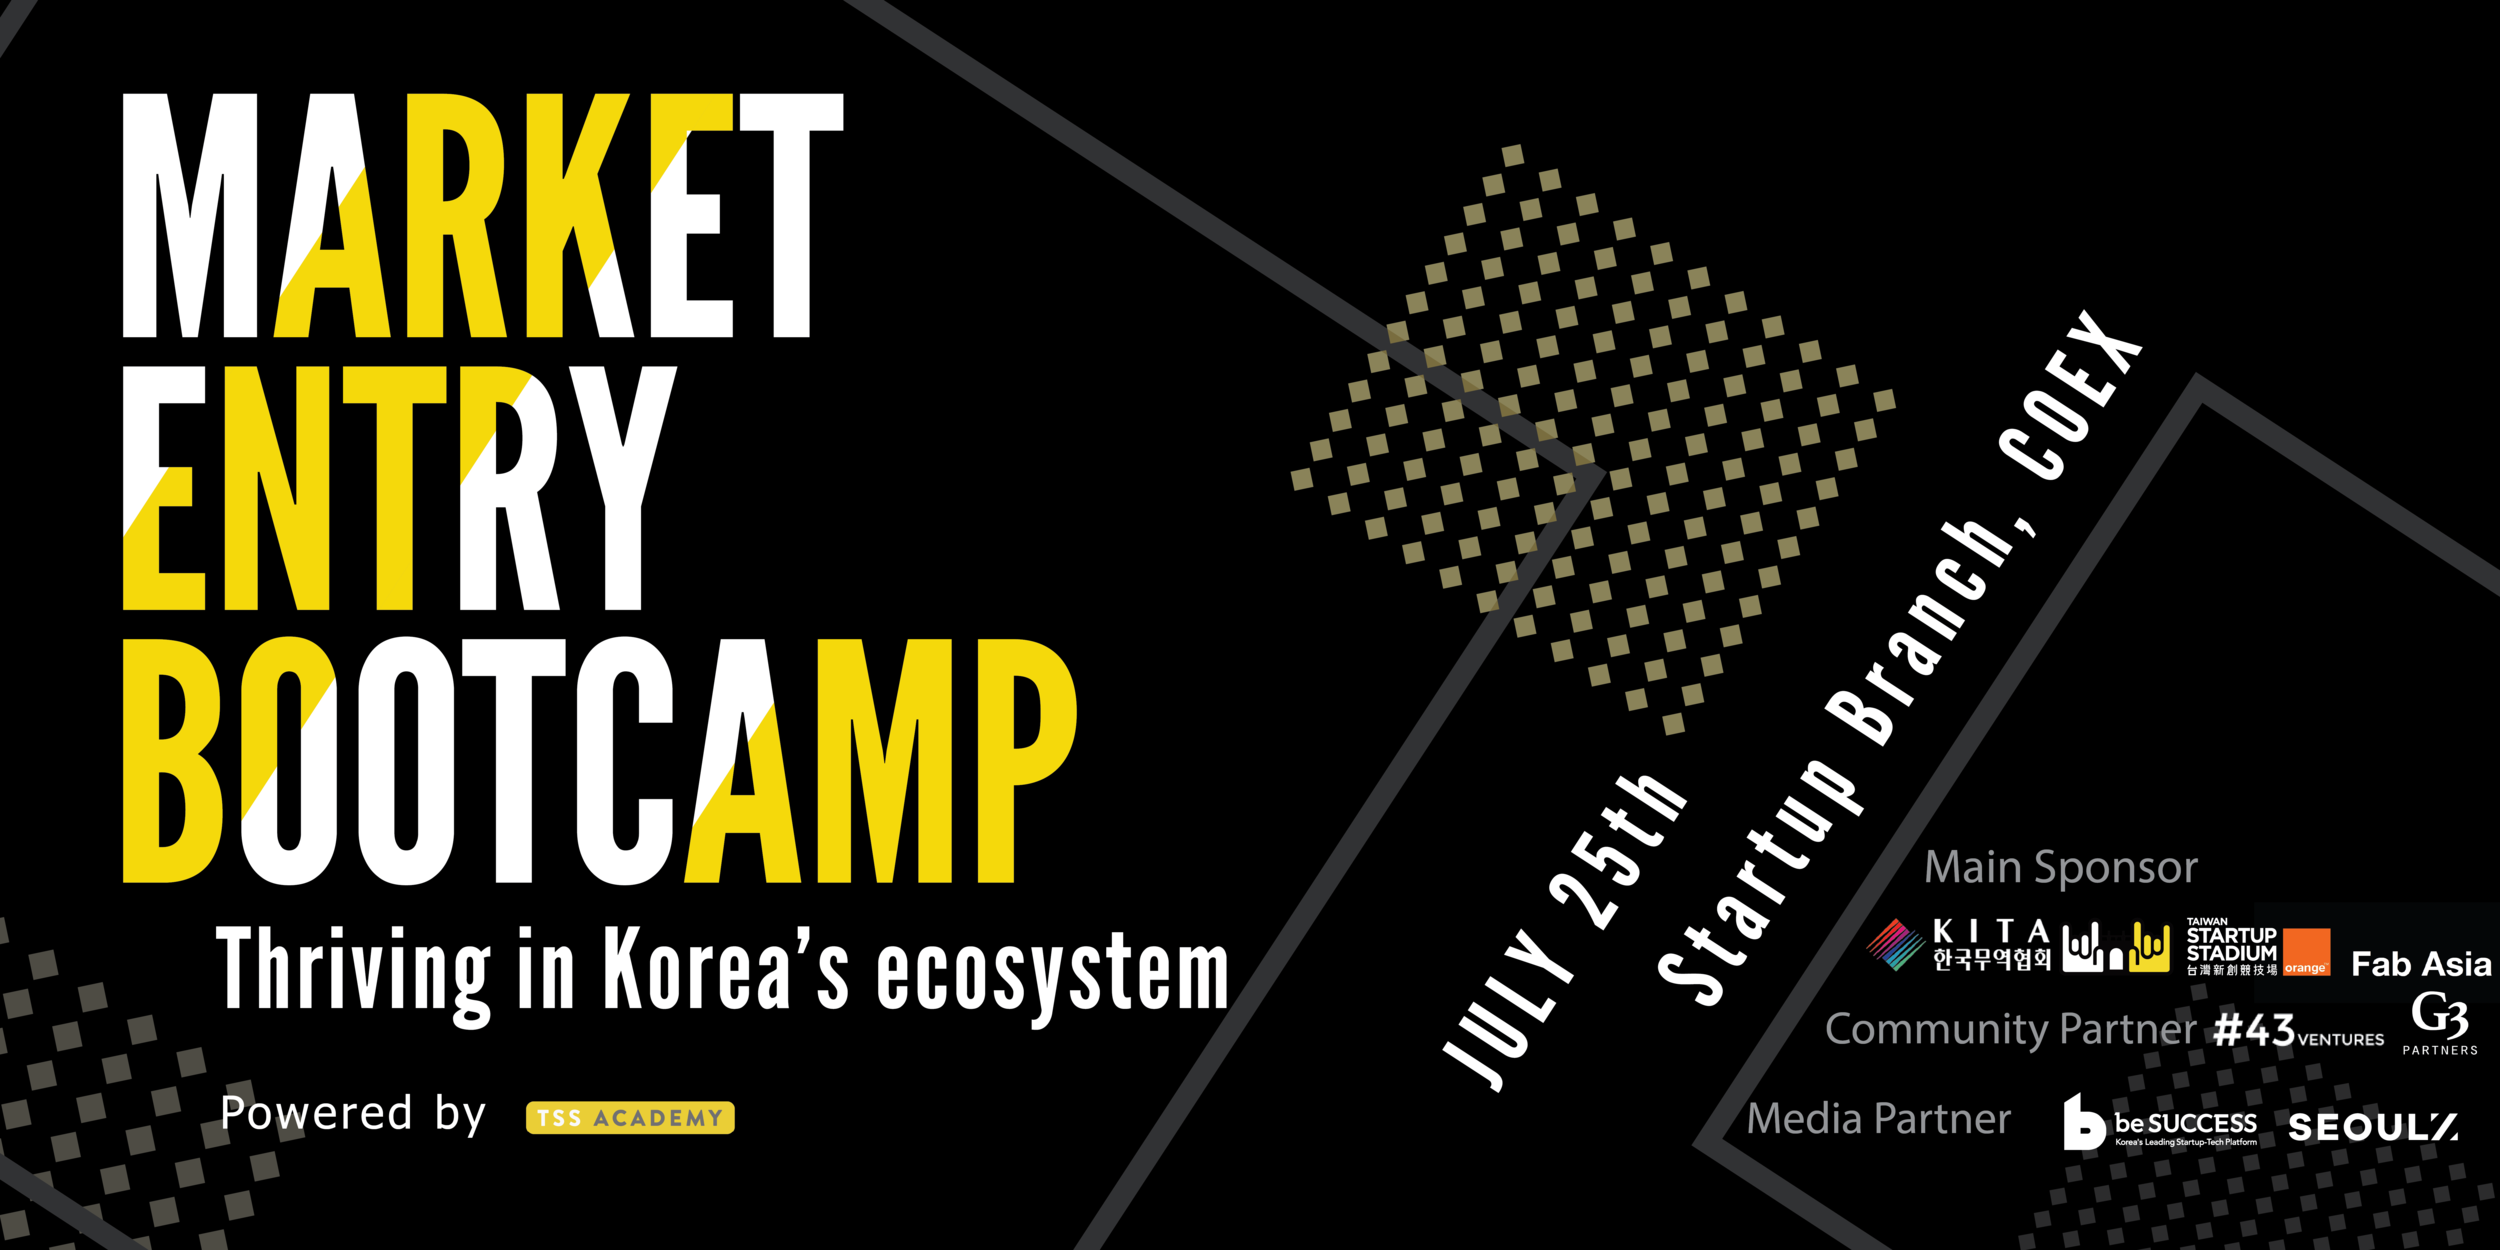 Market_Entry_Bootcamp_Banner.png